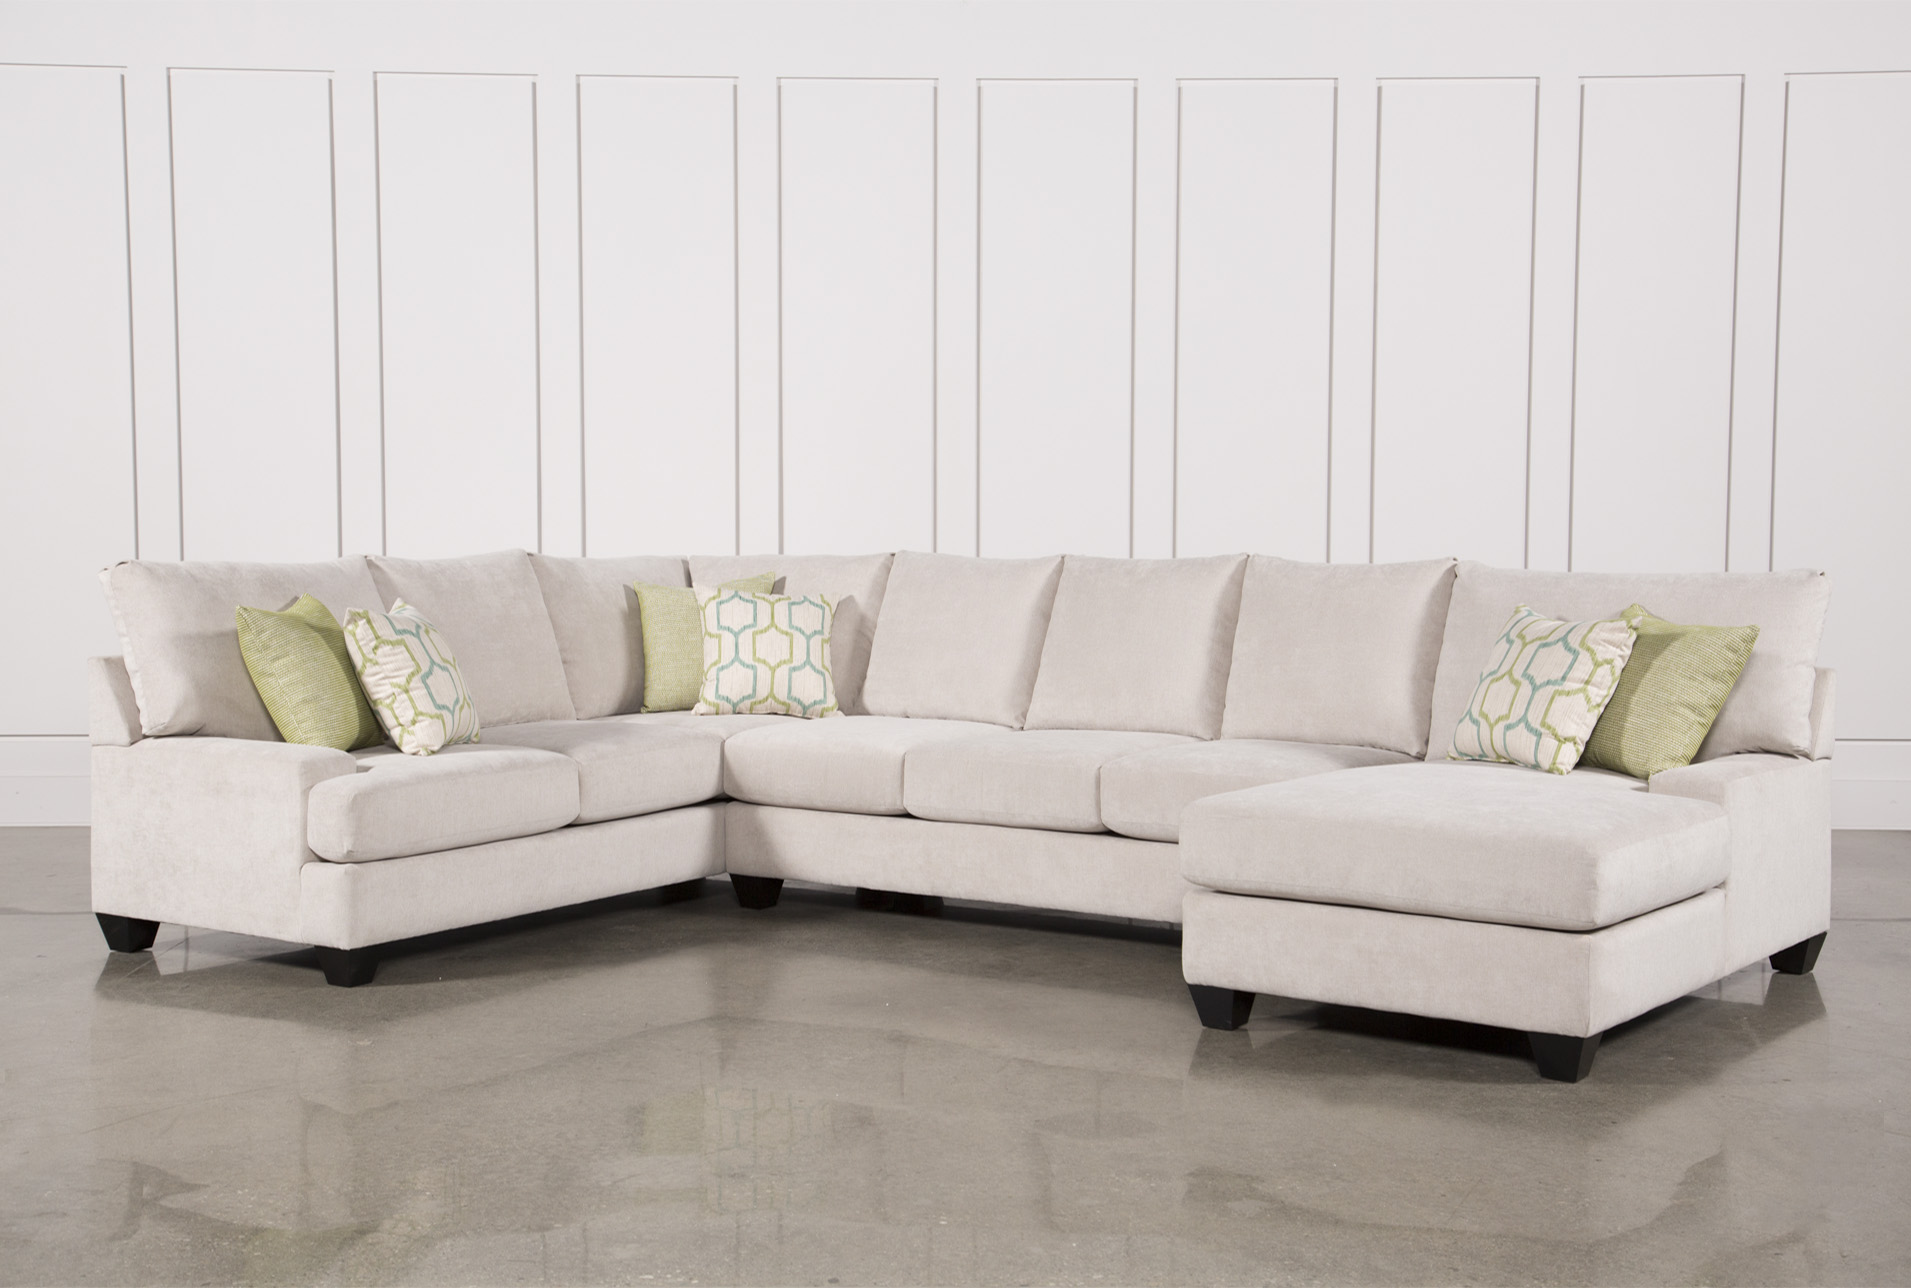 Harper Foam 3 Piece Sectional W/Raf Chaise (Qty: 1) Has Been Successfully  Added To Your Cart.